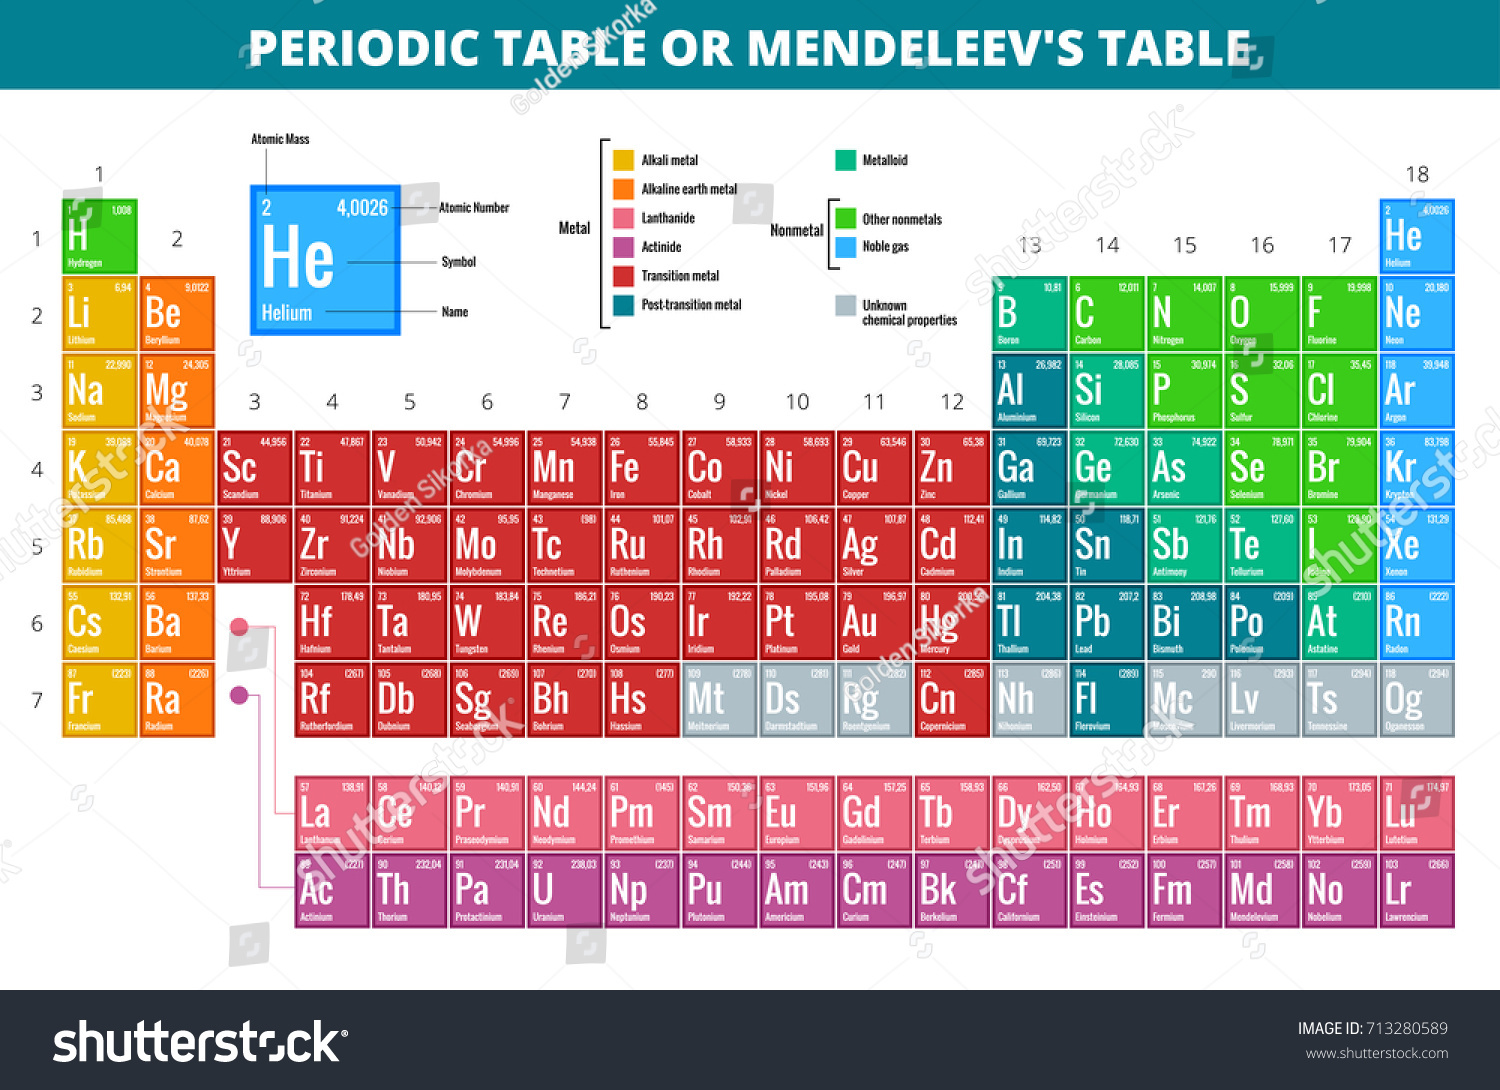 mendeleev s periodic table of elements illustration